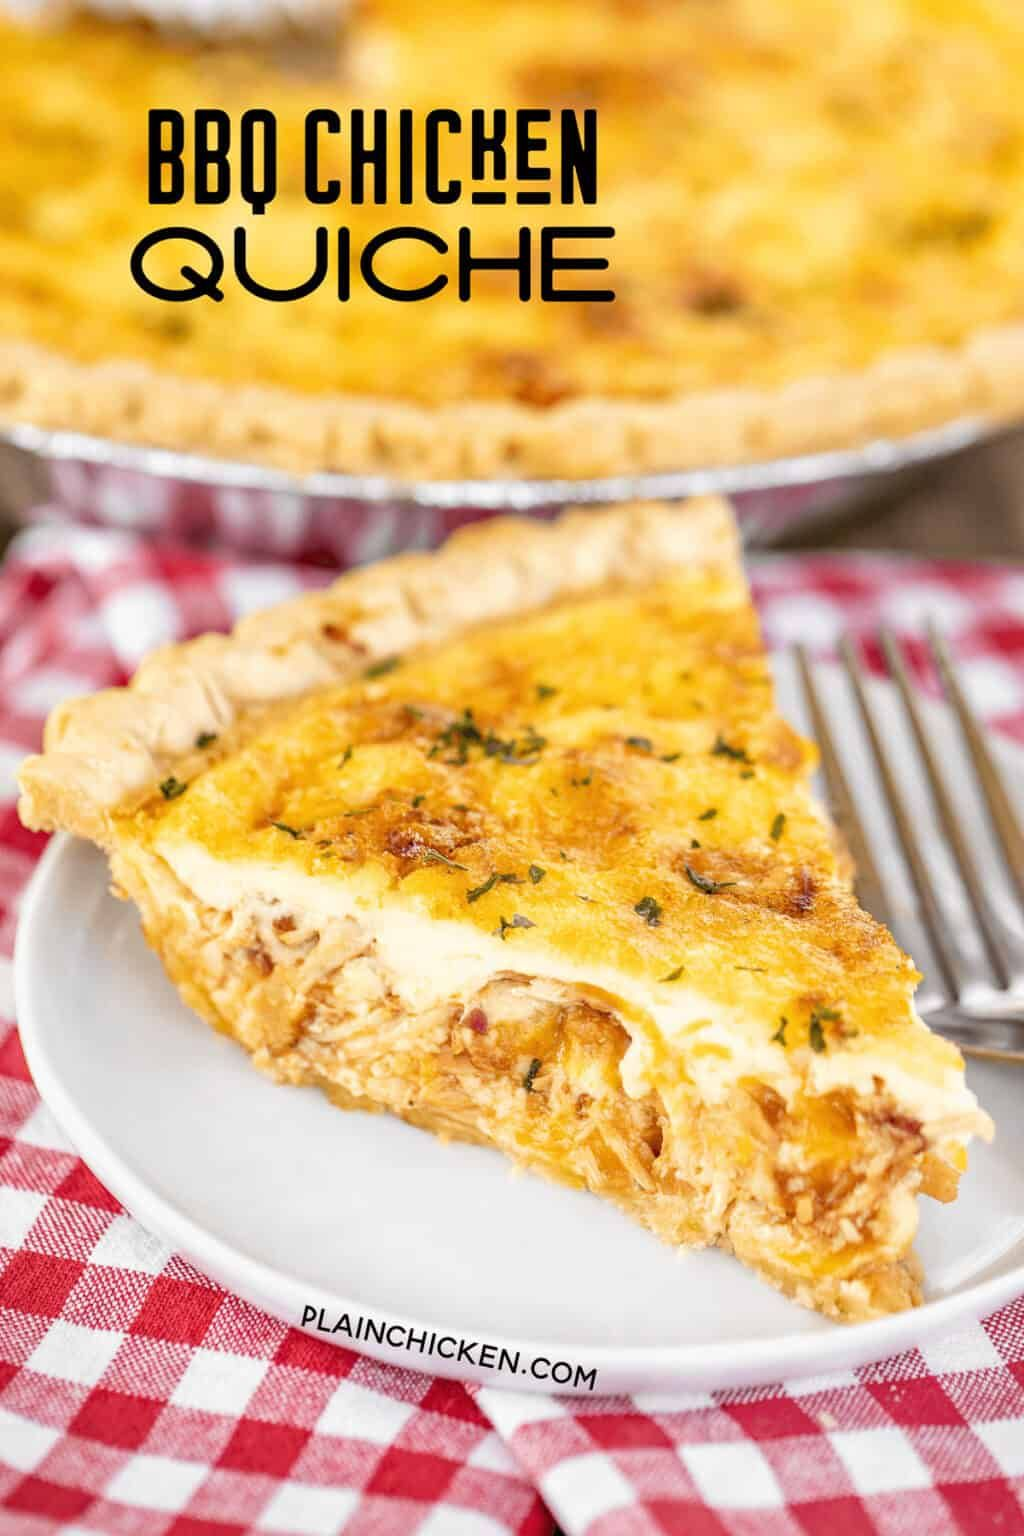 Bbq Chicken Quiche So Delicious Can Make Ahead And Refrigerate Or Freeze For Later Chicken Bacon Bbq Sauce Cheddar Che In 2020 Chicken Quiche Bbq Chicken Quiche